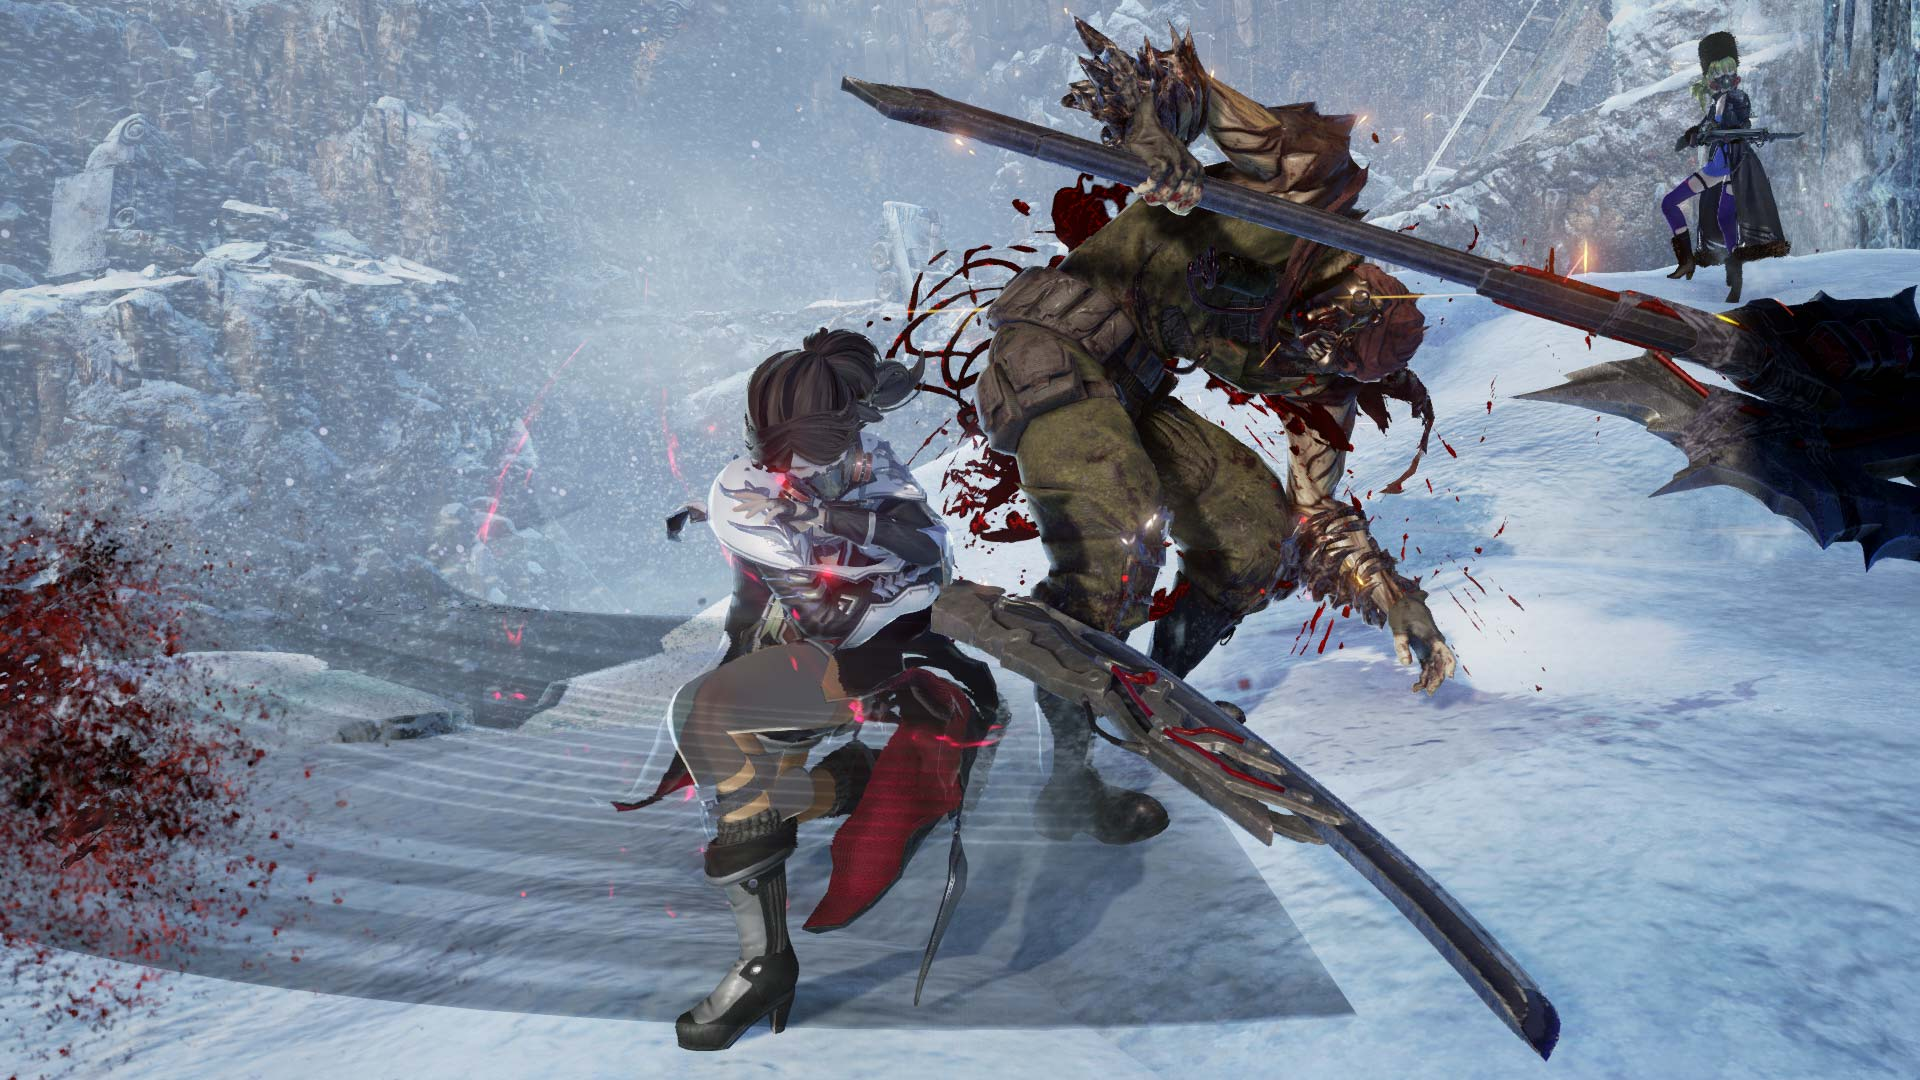 code vein focus, Xbox Games with Gold Predictions